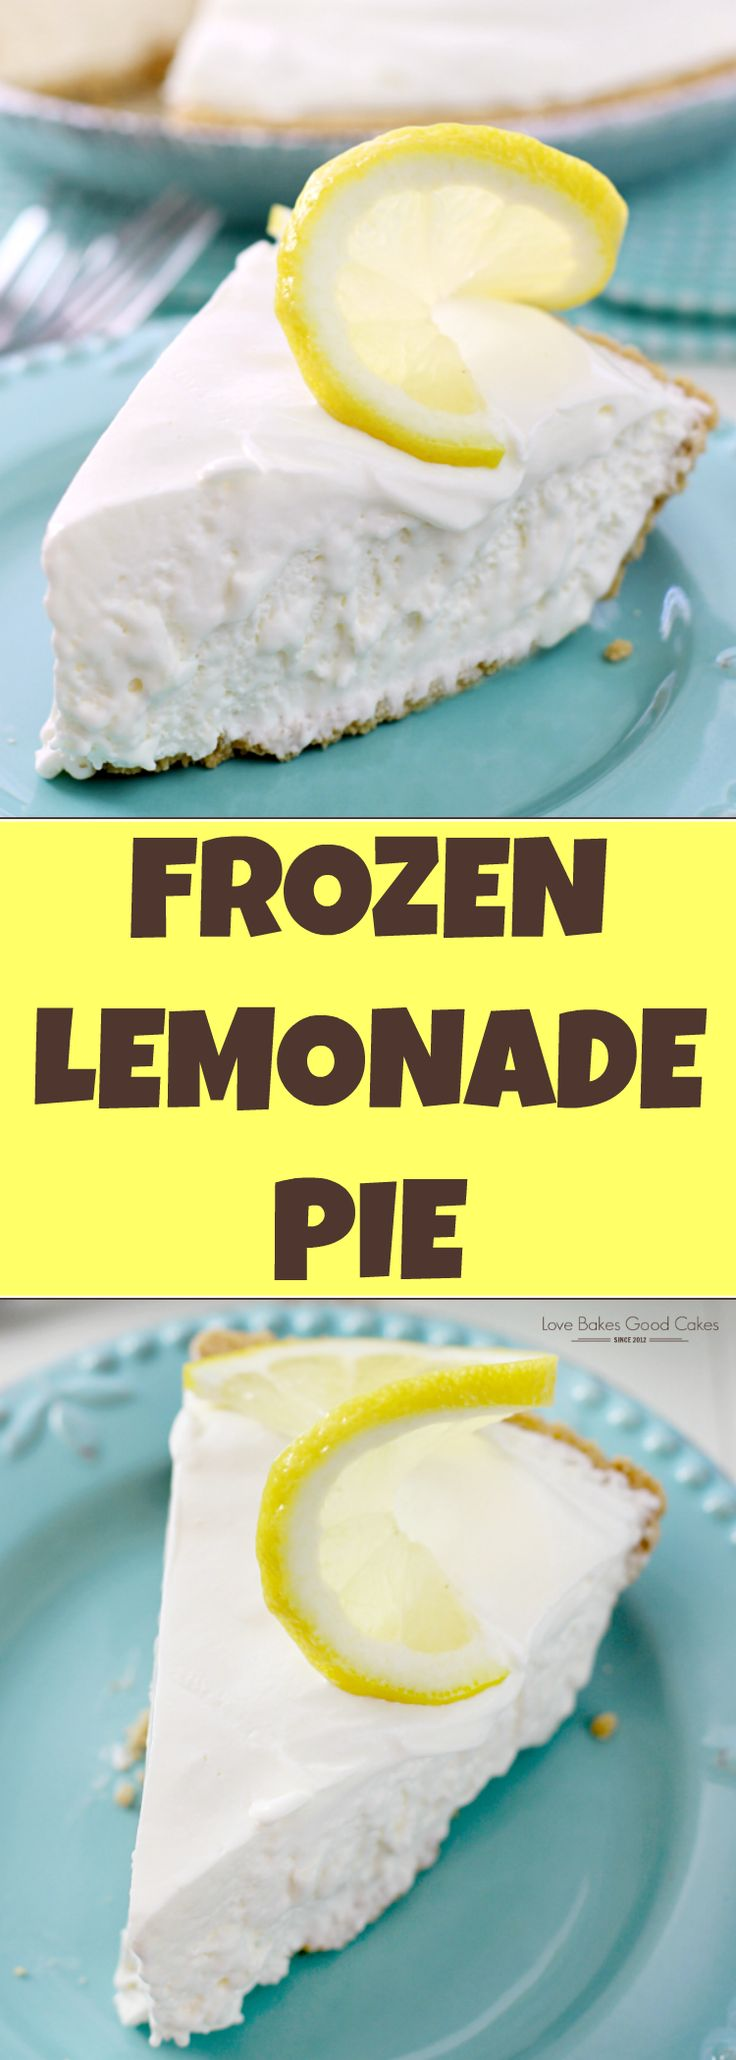 Dessert doesn't get any easier than this Frozen Lemonade Pie! It's a lemon lover's dream come true!